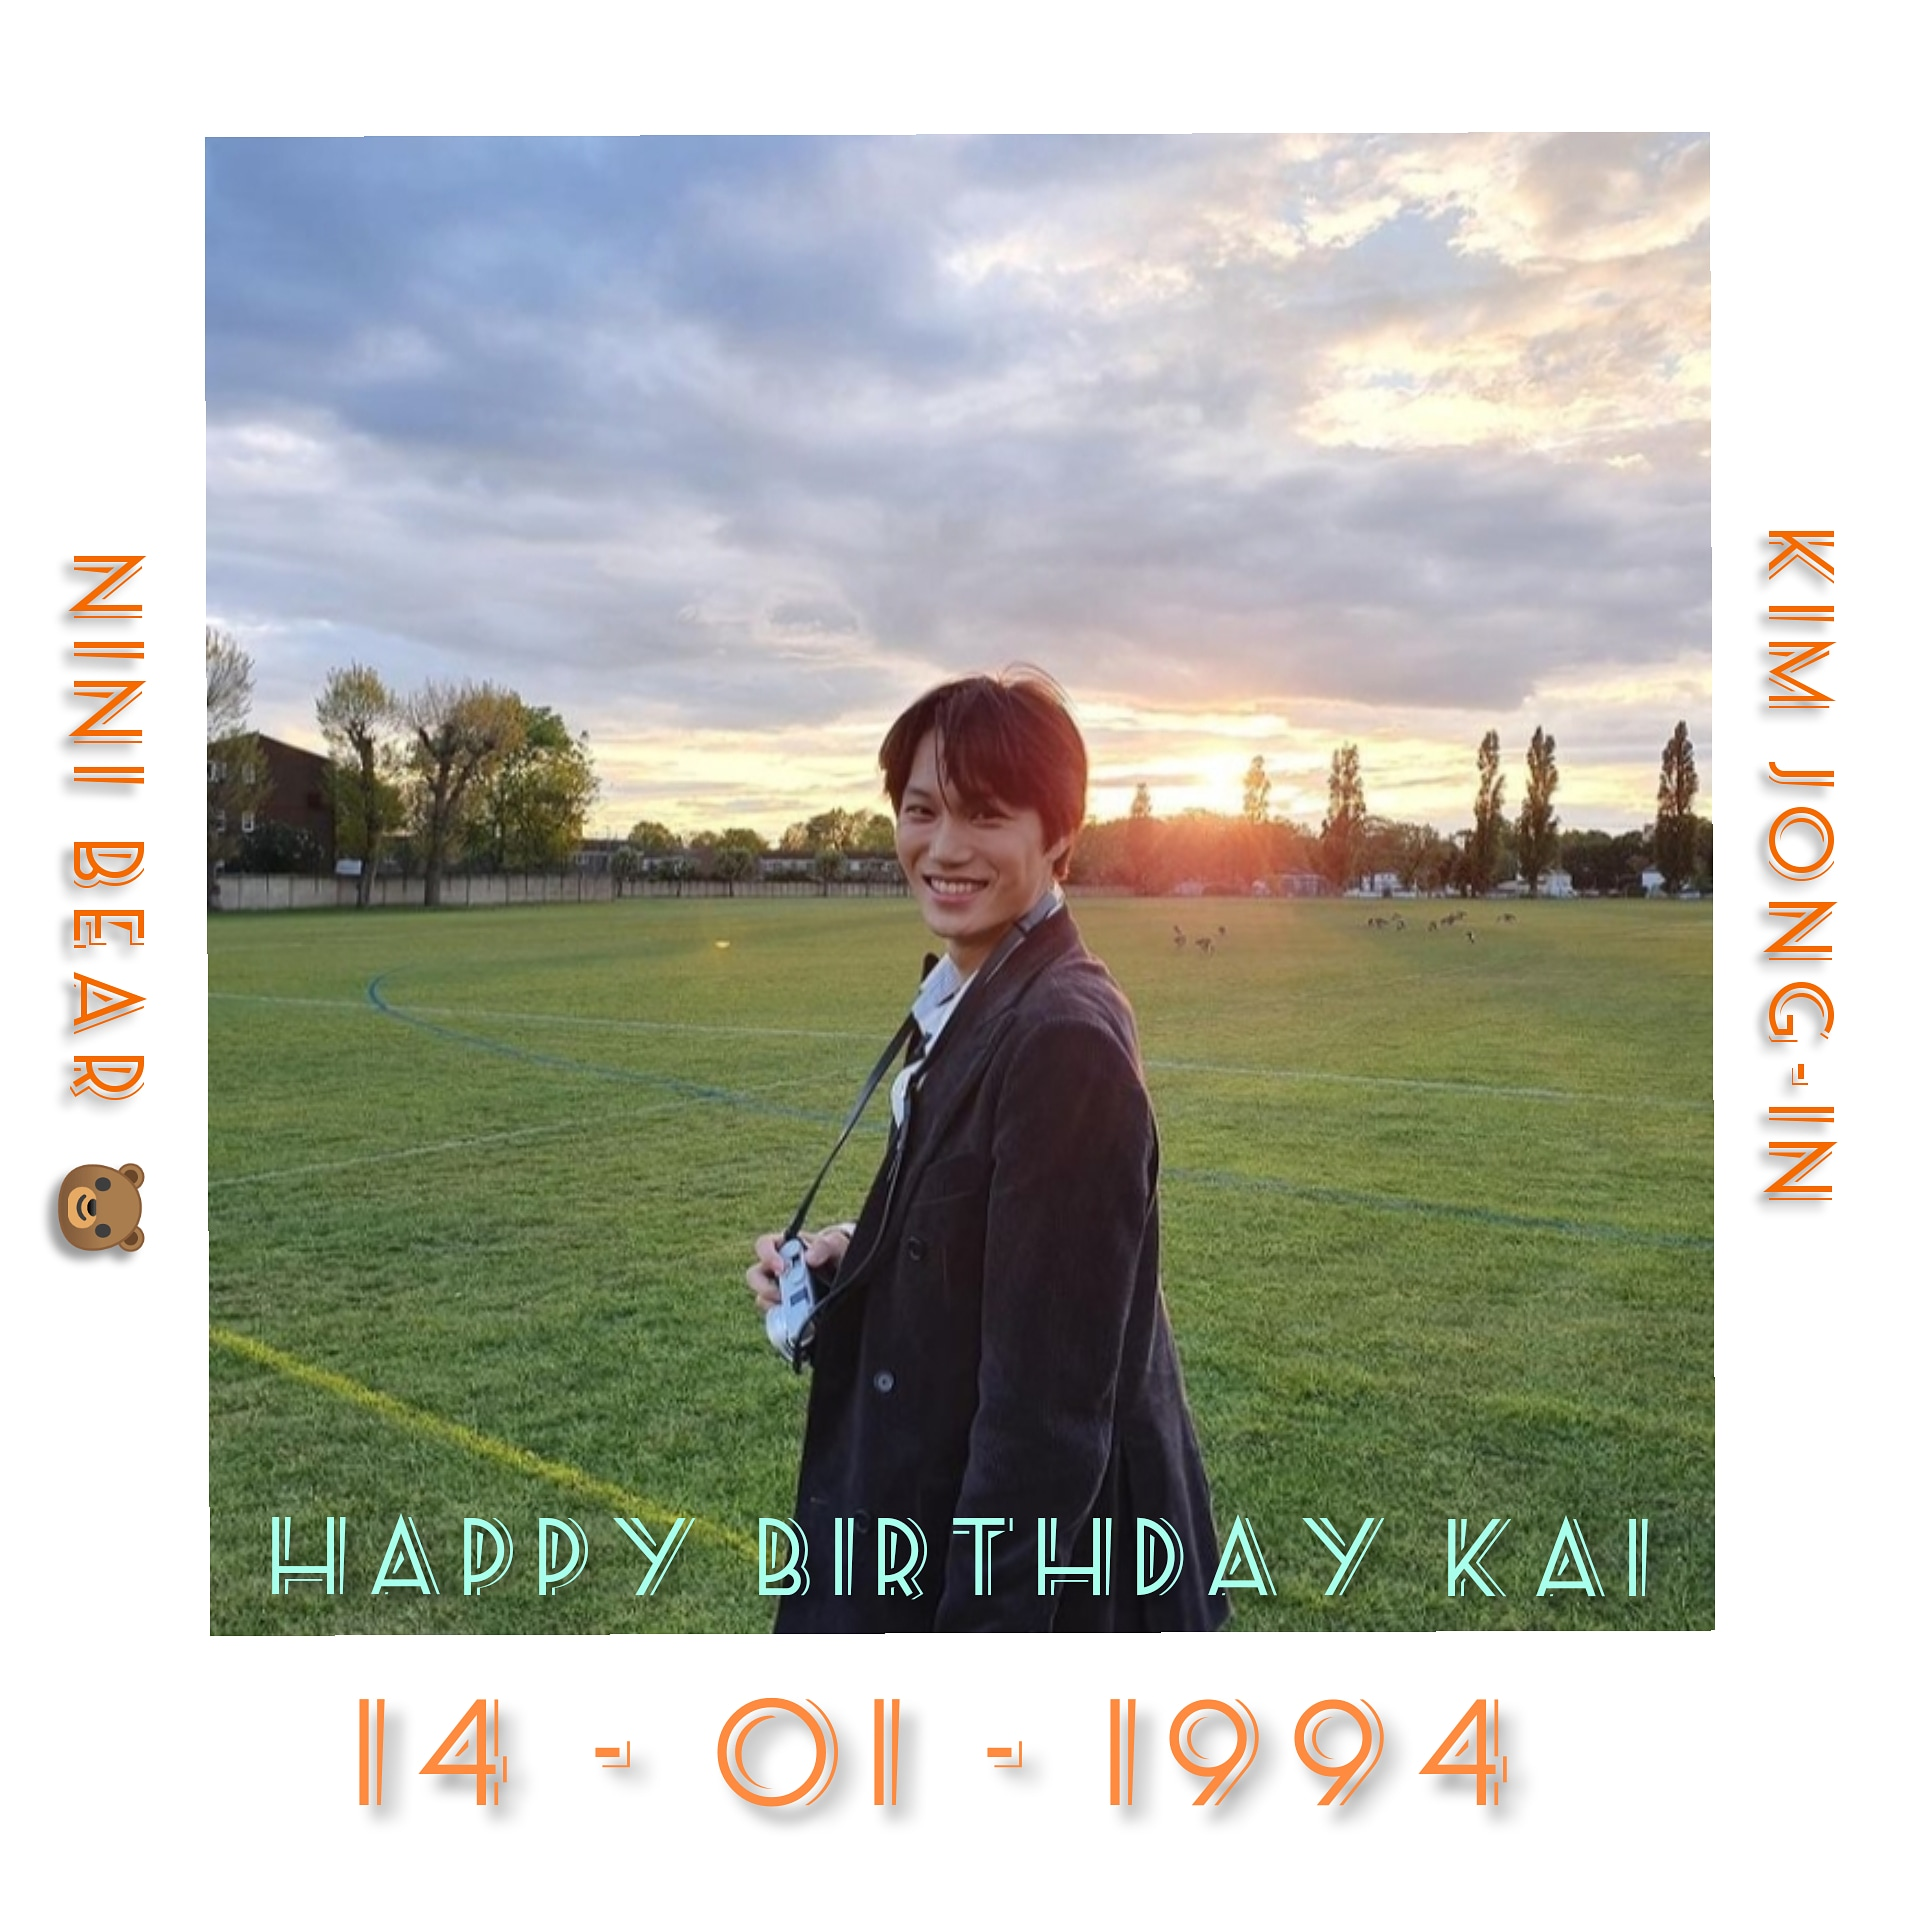 HAPPY BIRTHDAY KAI Photo,HAPPY BIRTHDAY KAI Twitter Trend : Most Popular Tweets